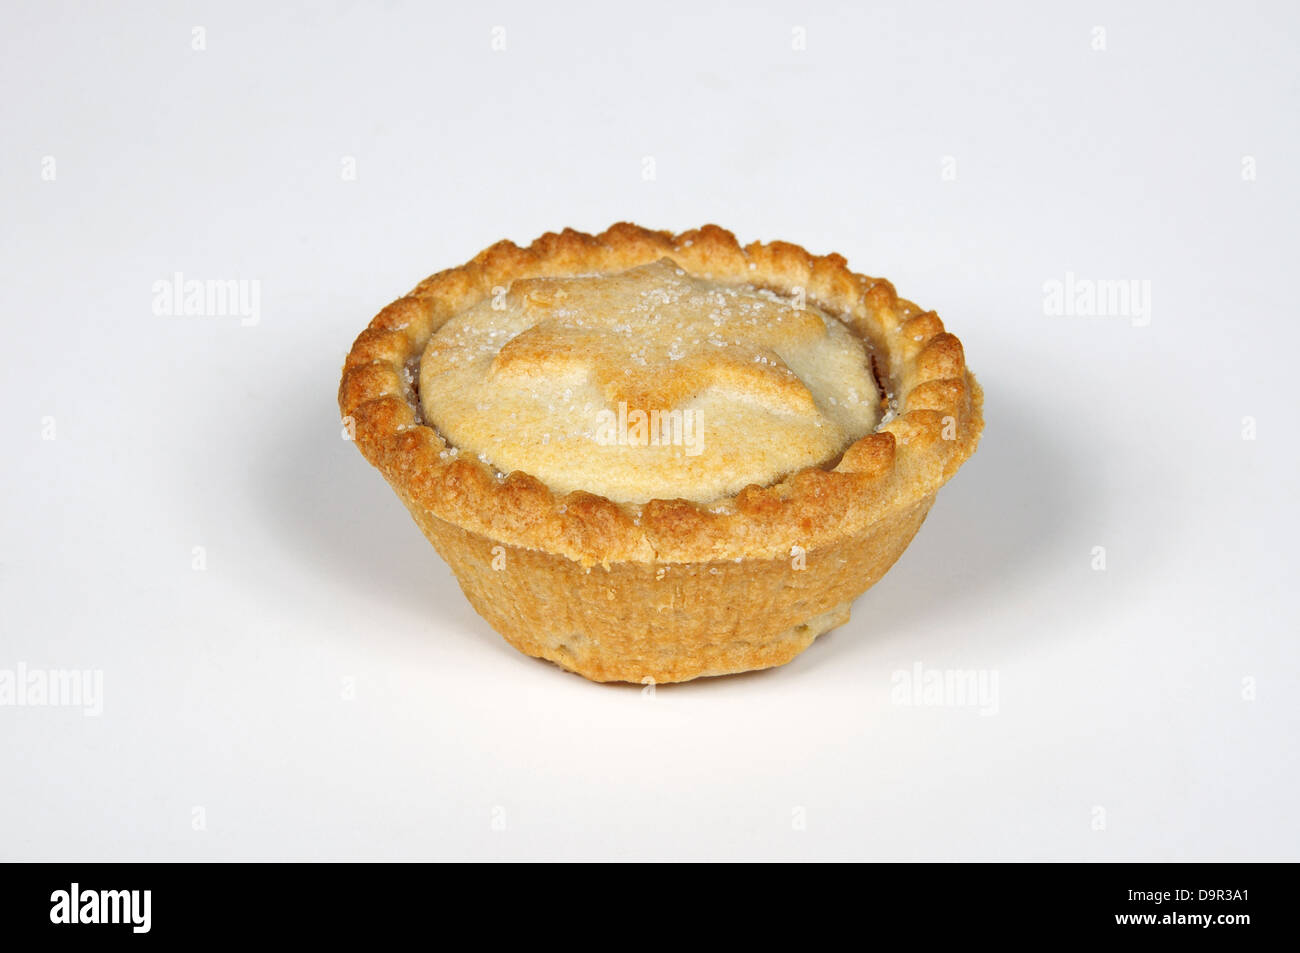 One mince pie against a light grey background. - Stock Image